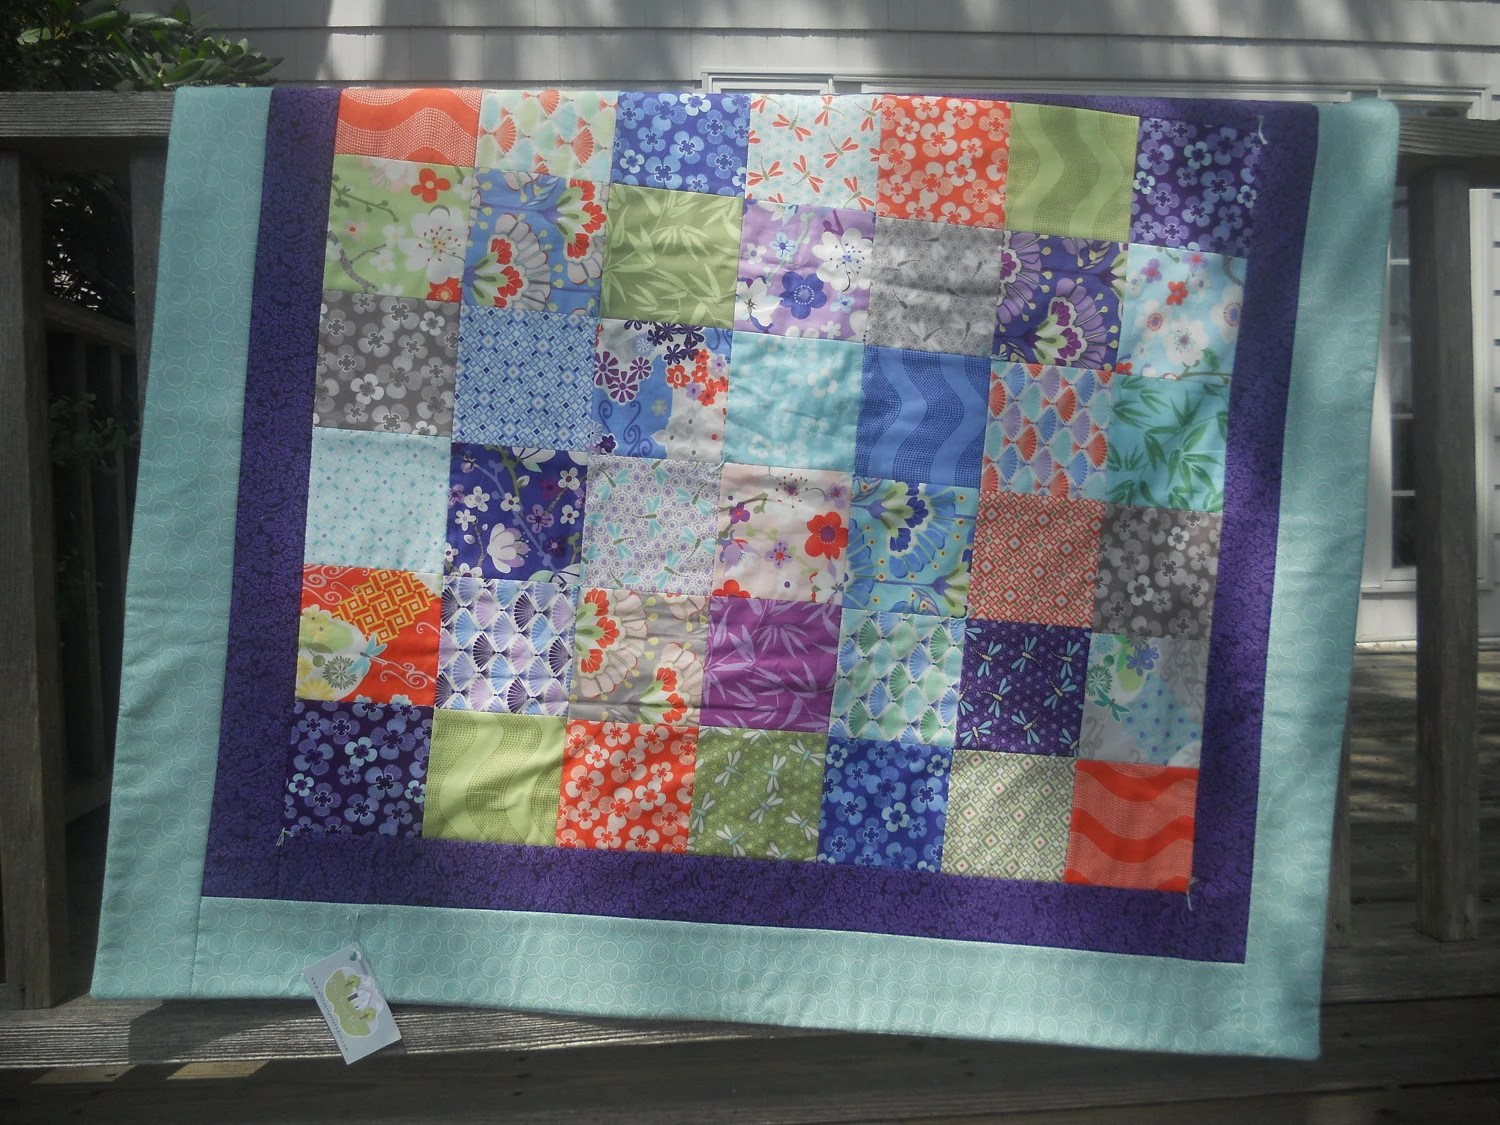 Baby or Lap Quilt in 'Good Fortune' fabrics Asian themed prints in fans, bamboo, dragonfly, floral in bright purple teal orange green blue